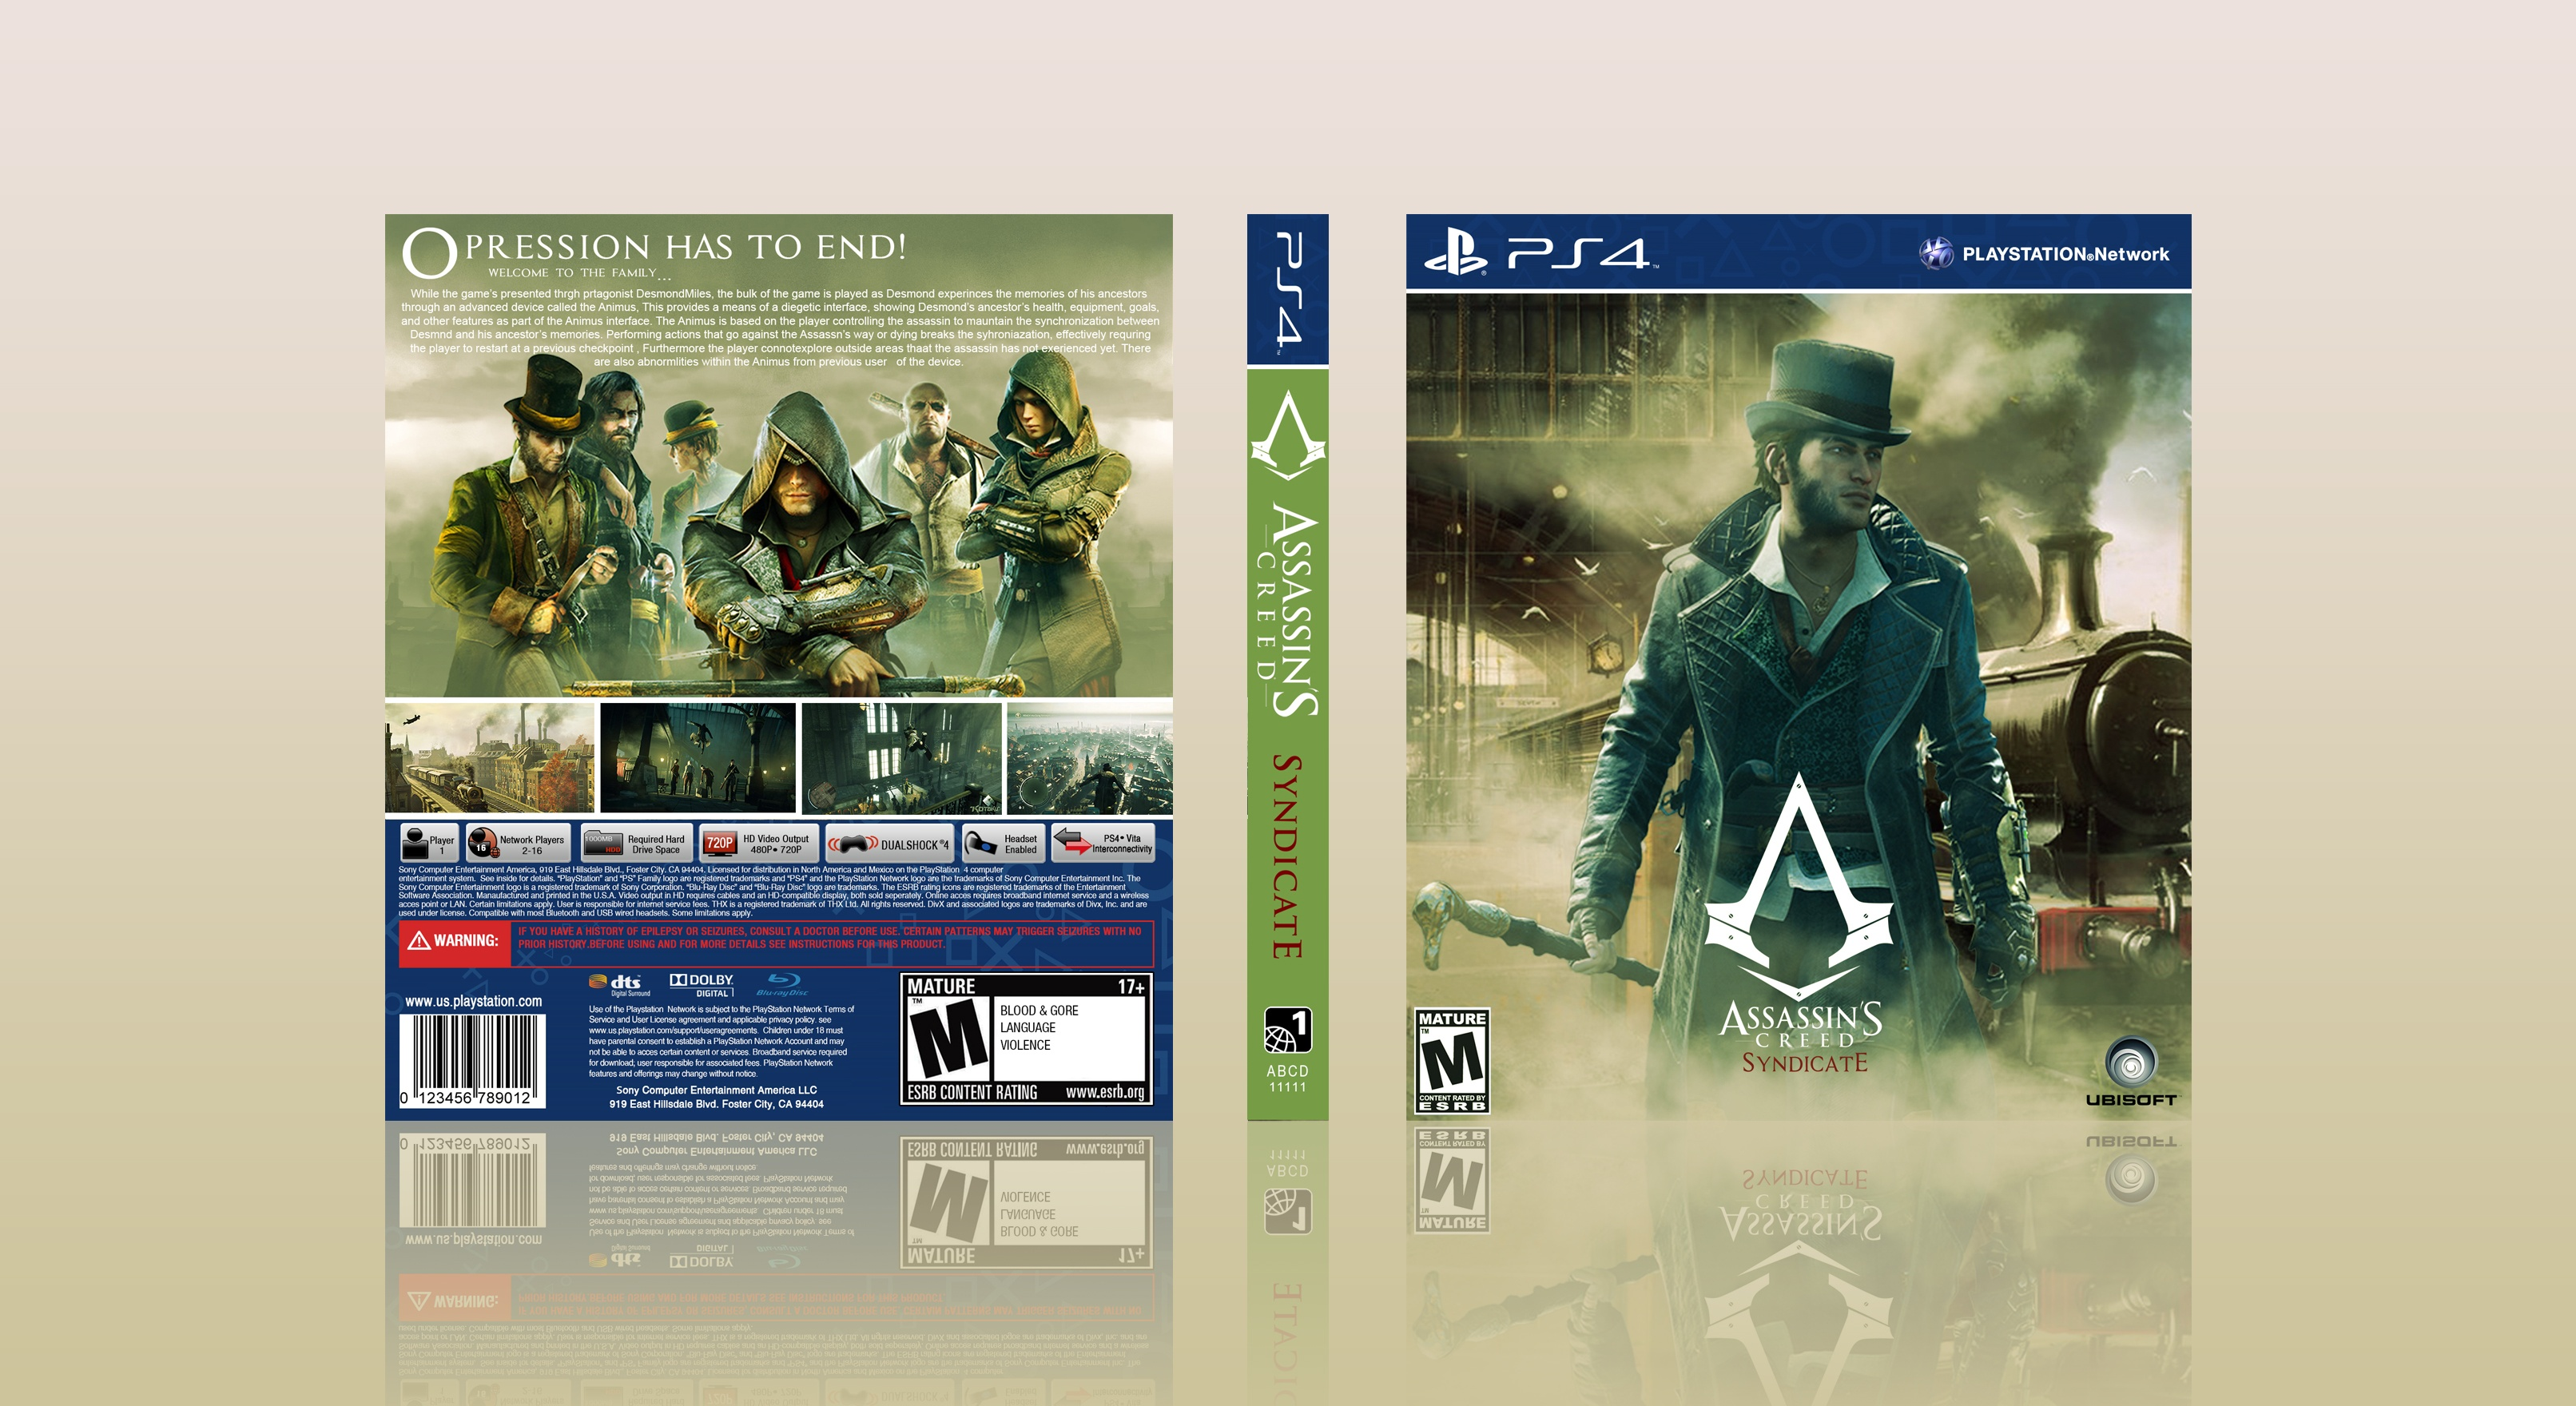 Assassin's Creed Syndicate box cover